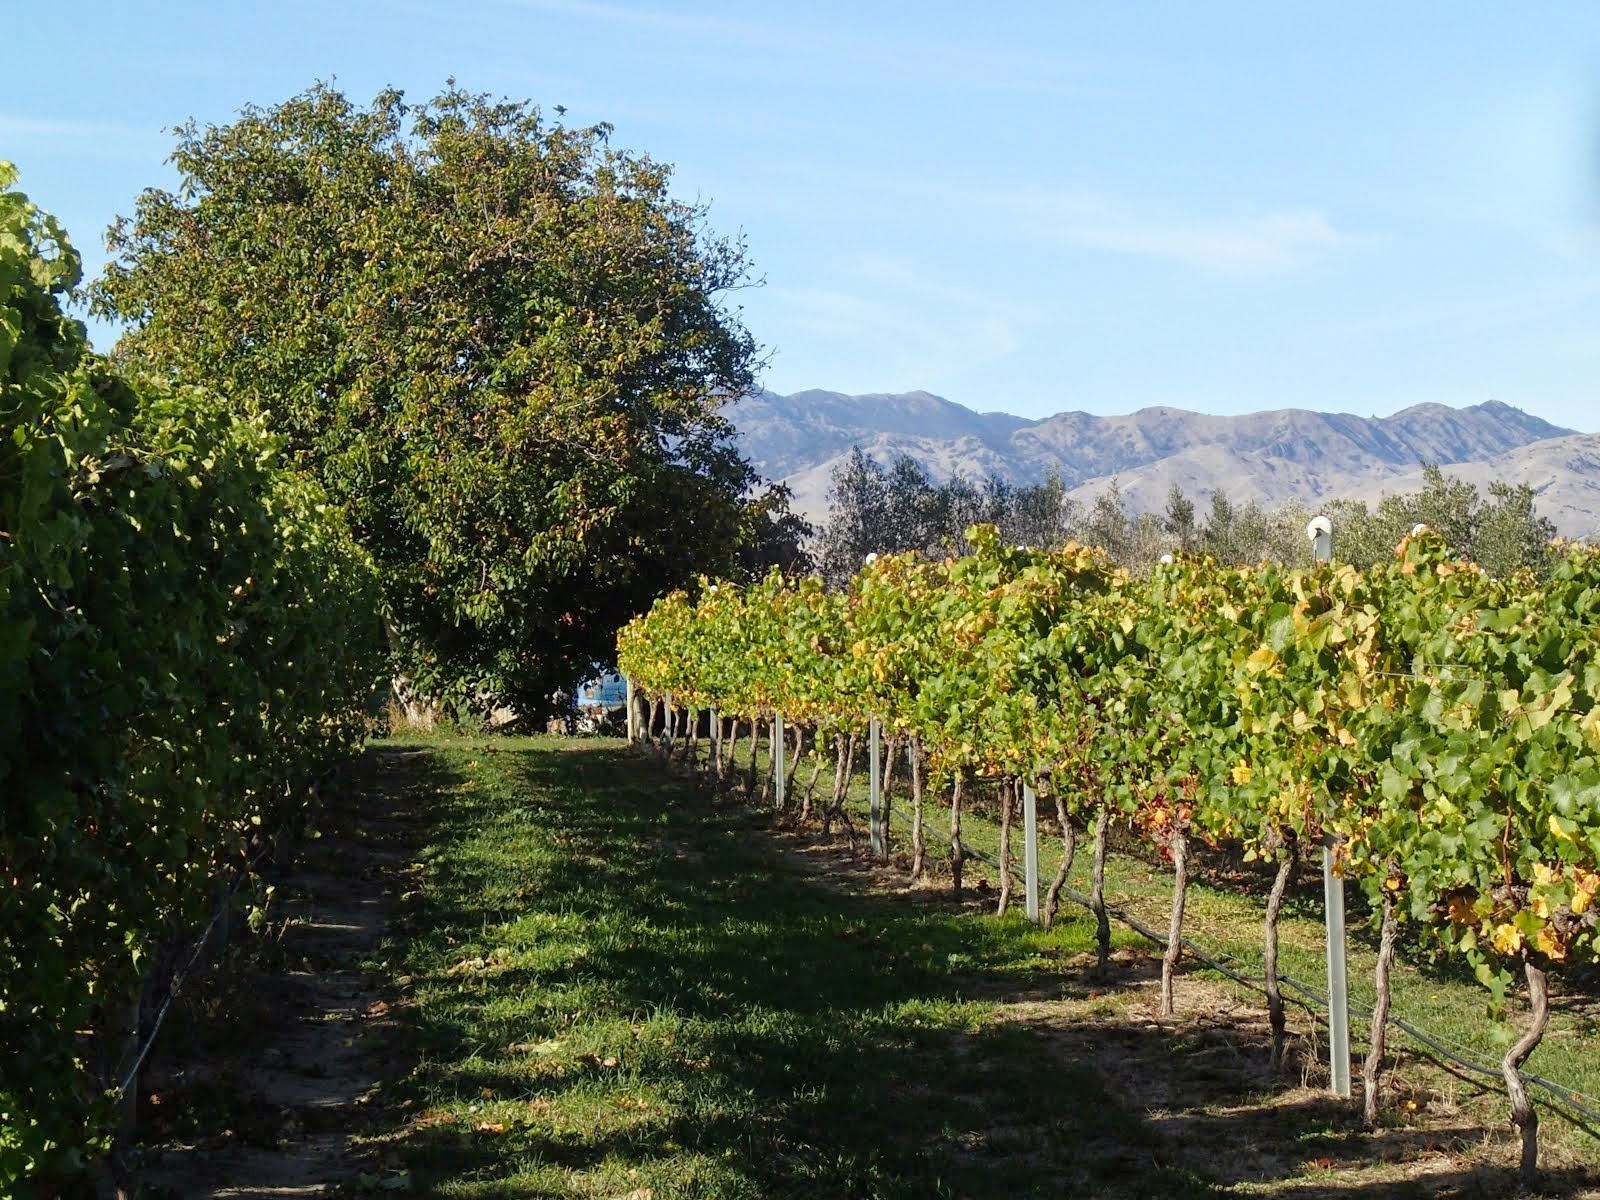 Looking down a row of vines to one of the walnut trees and the dry Wairau Hills